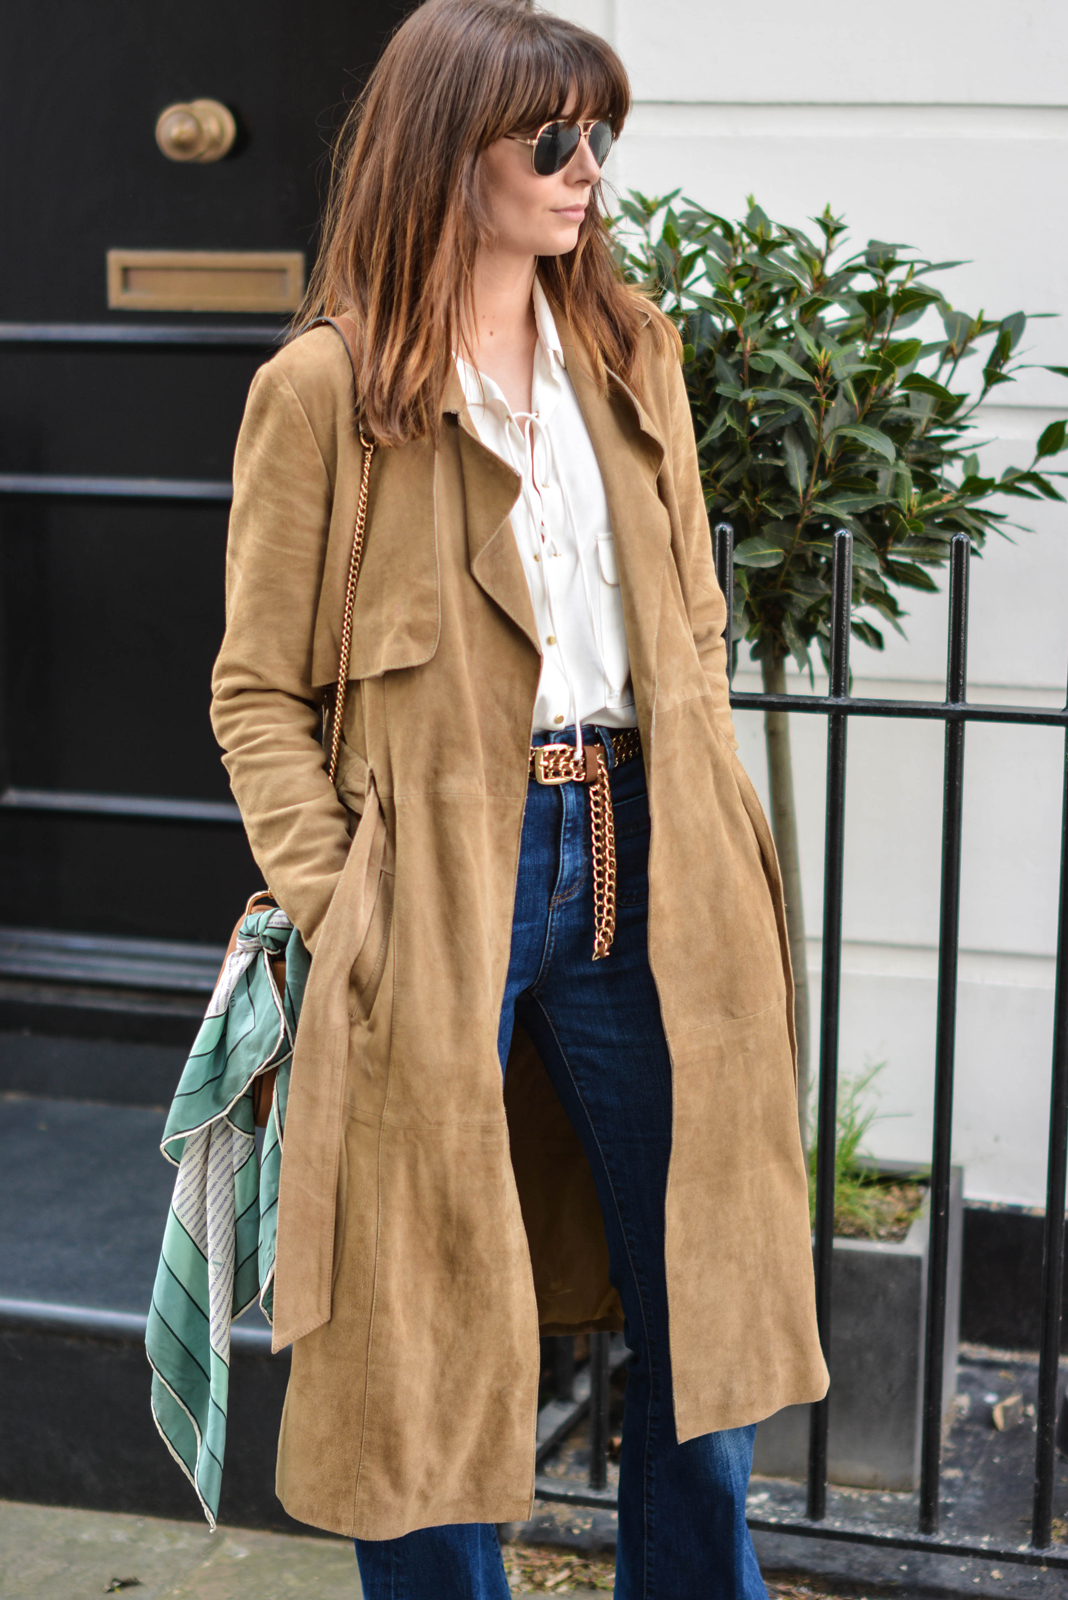 EJSTYLE - Suede trench coat by Gestuz, Zara lace up shirt, High waisted jeans, tan chain belt, vintage valentino scarf tied to a Chloe drew dupe bag from Forever 21